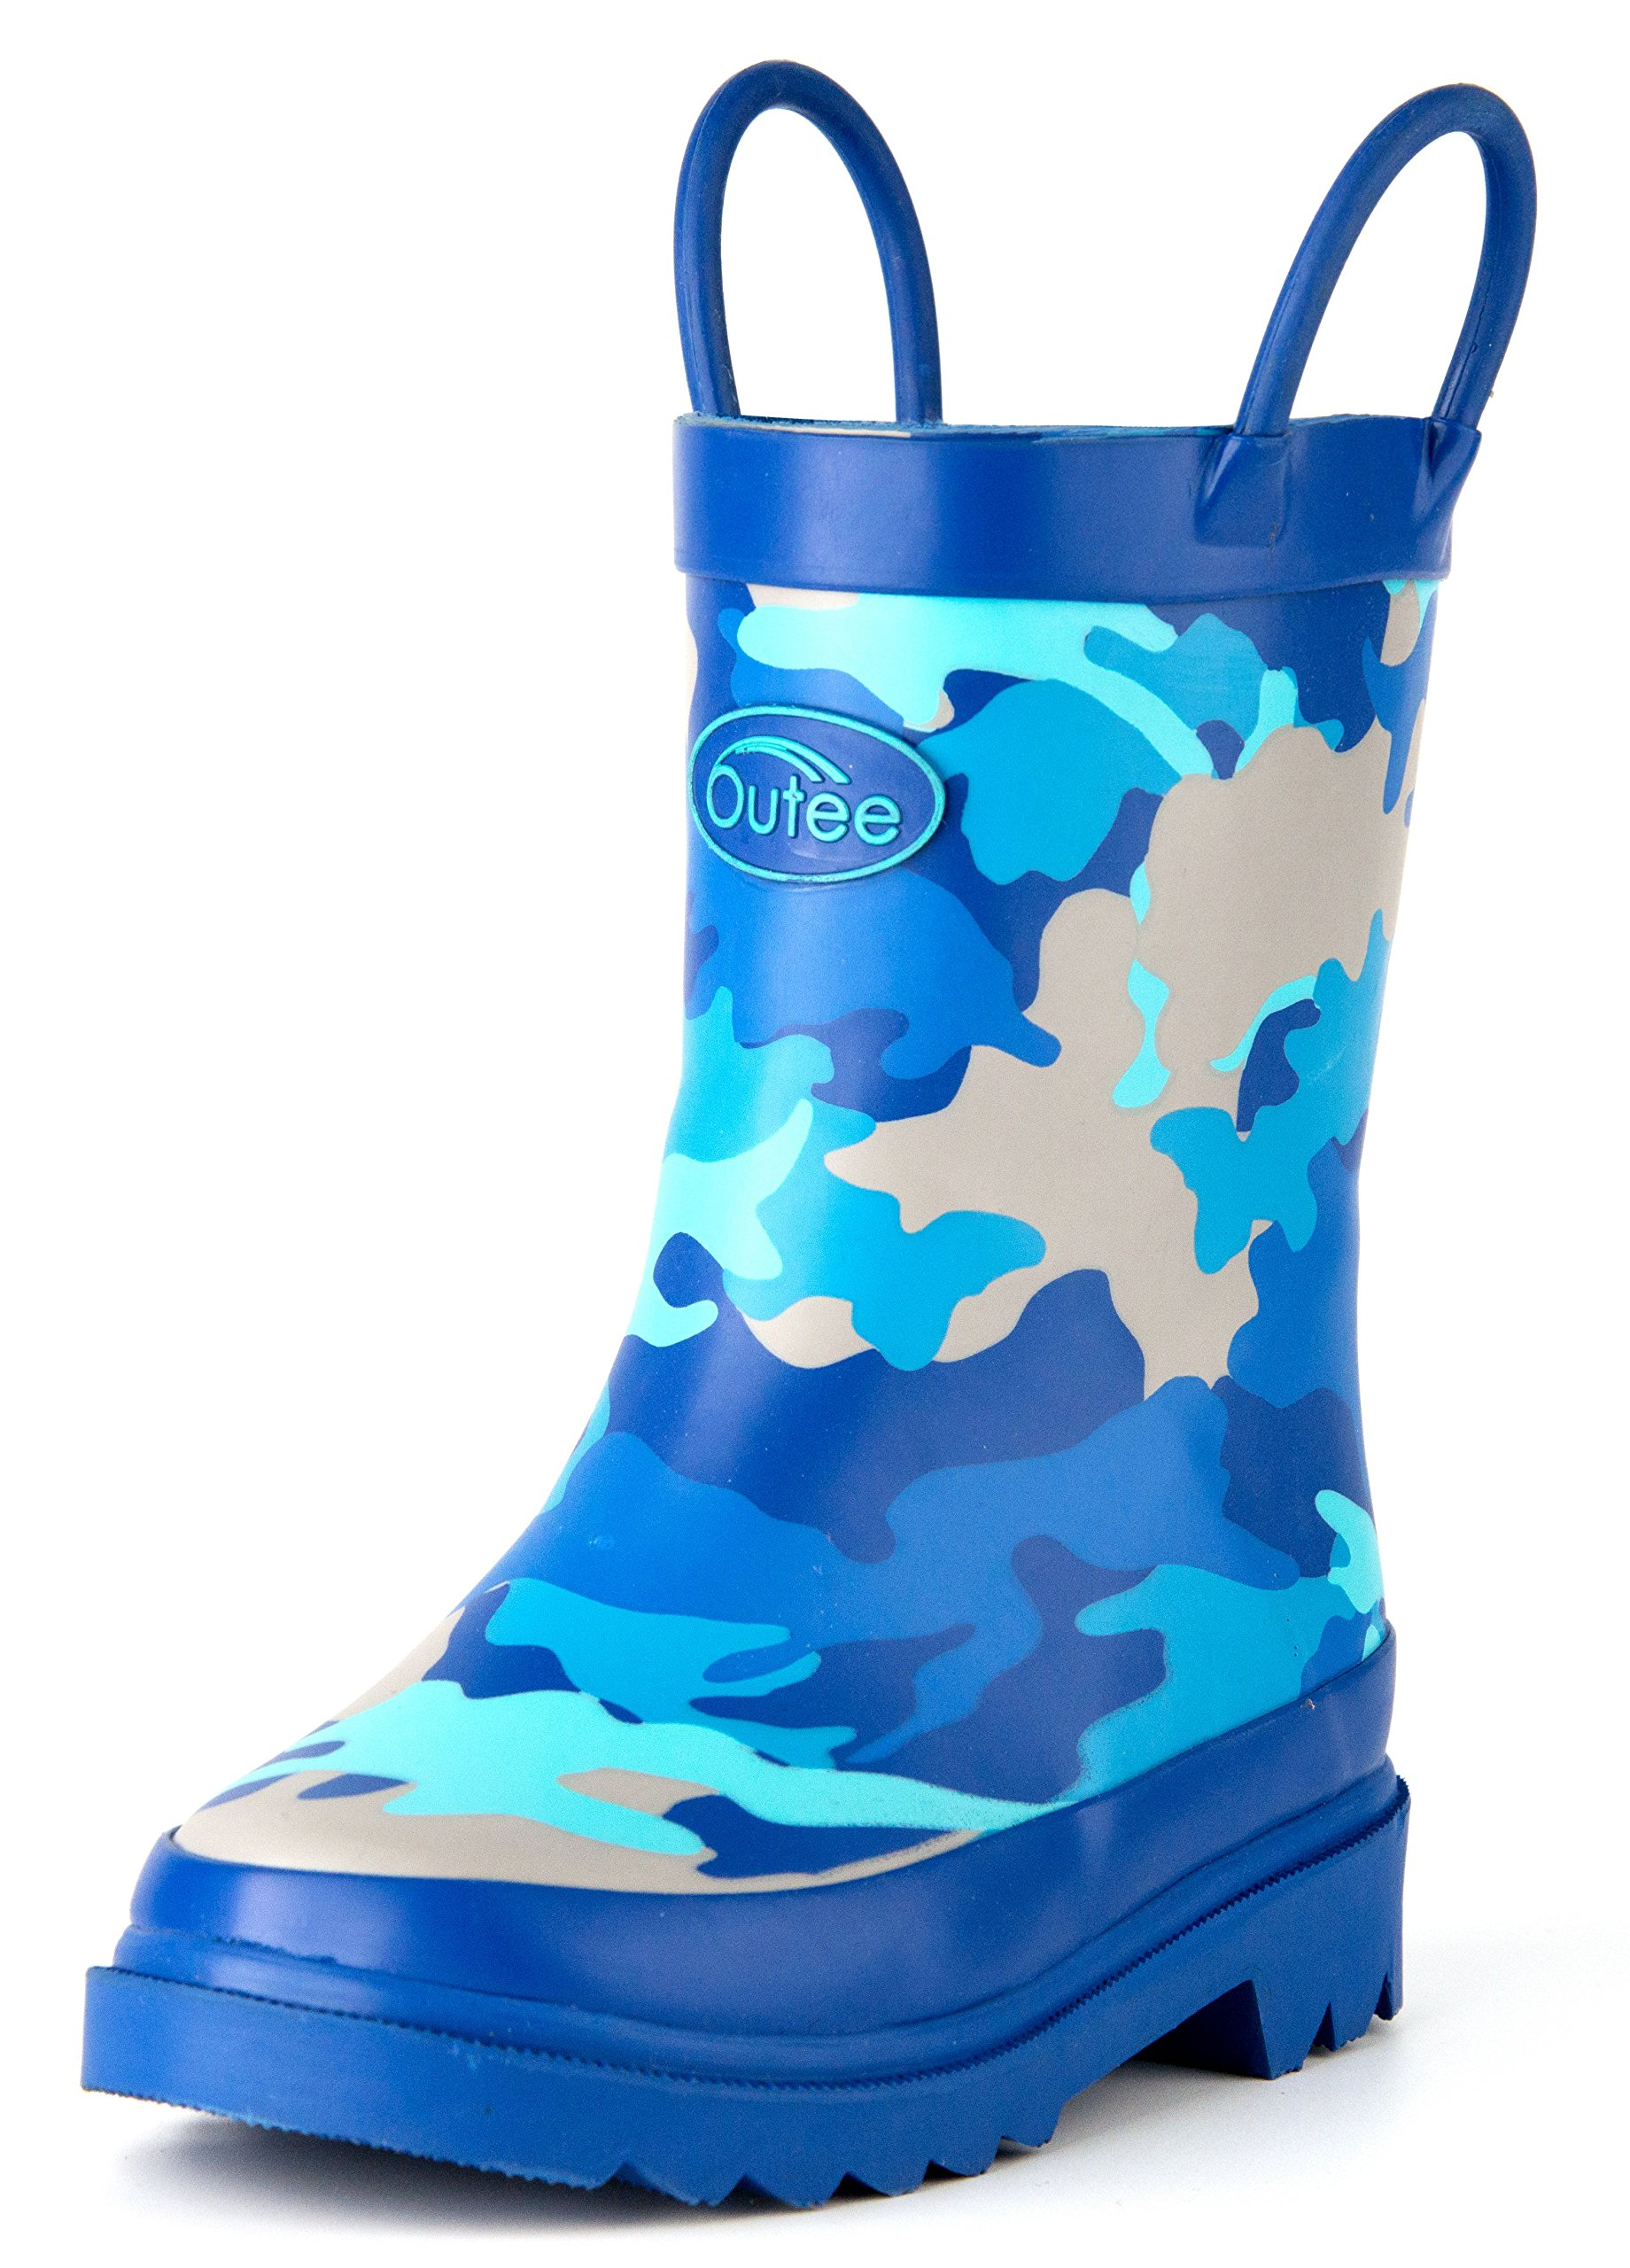 Outee Toddler Boys Kids Rubber Rain Boots Camo Waterproof Shoes Blue Cute Print with Easy-On Handles Classic Comfortable Removable Insoles Anti-Slippery Durable Sole with Grip (Size 9,Camo Blue)